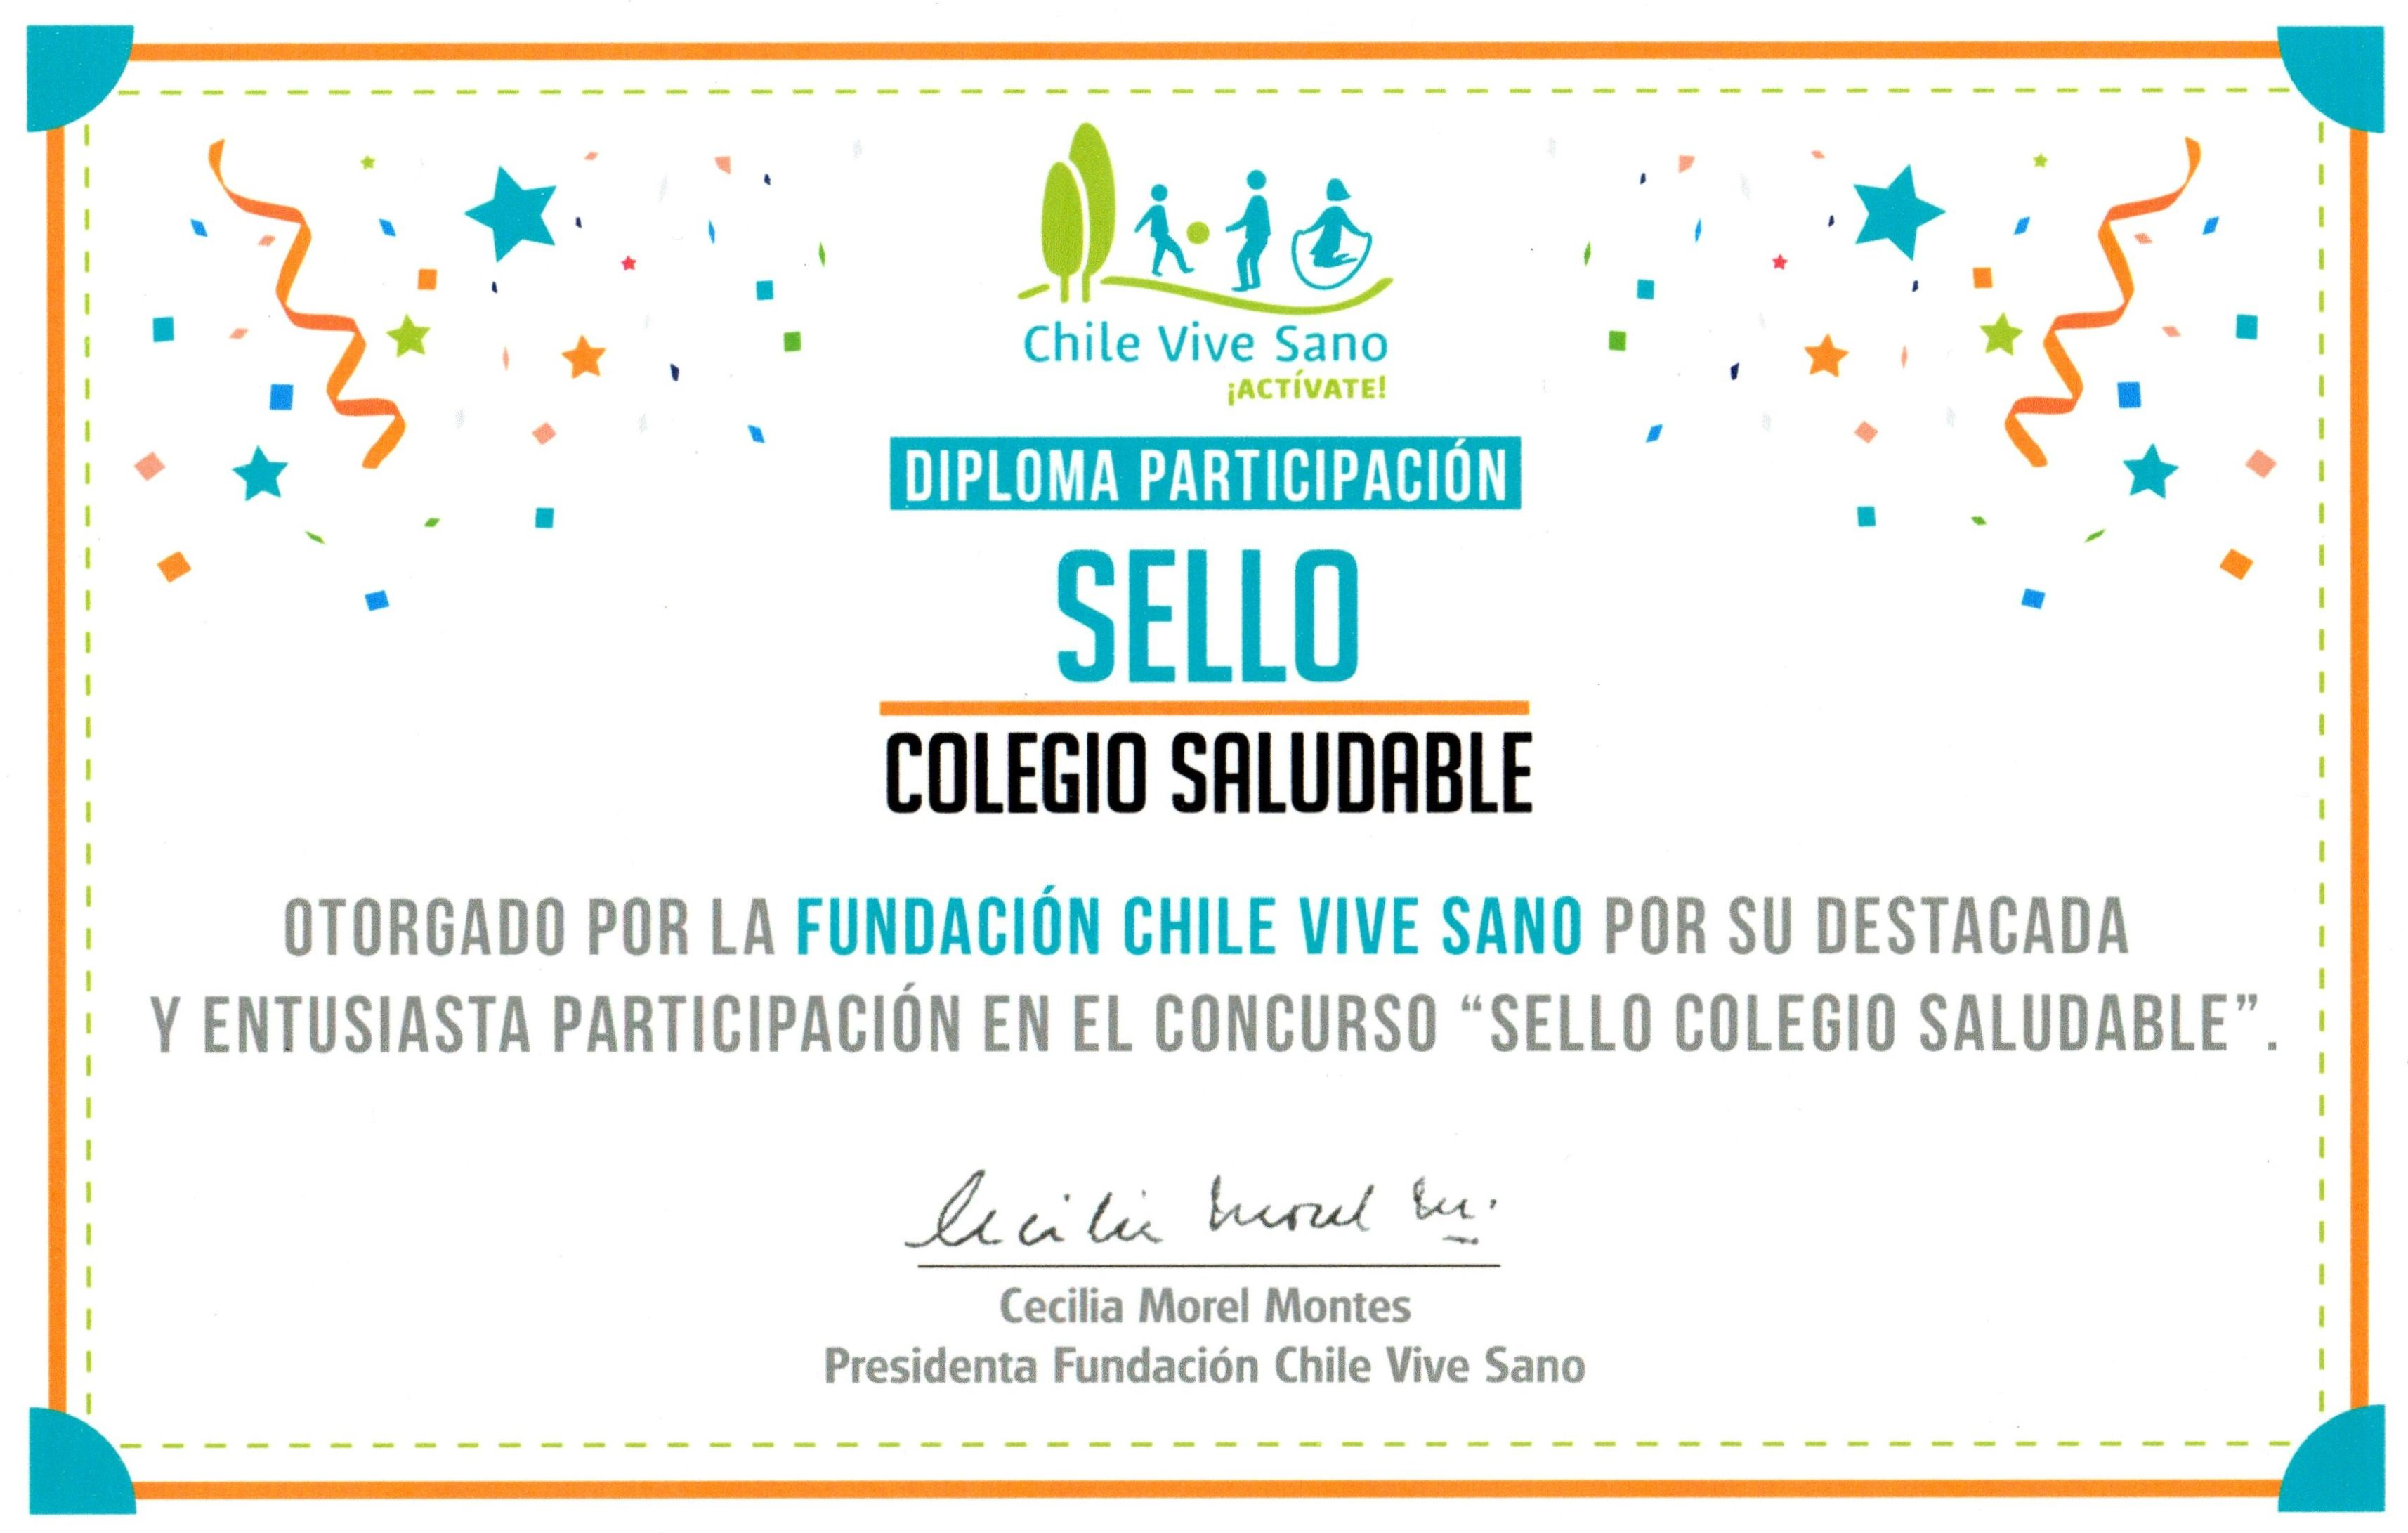 sello colegio saludable